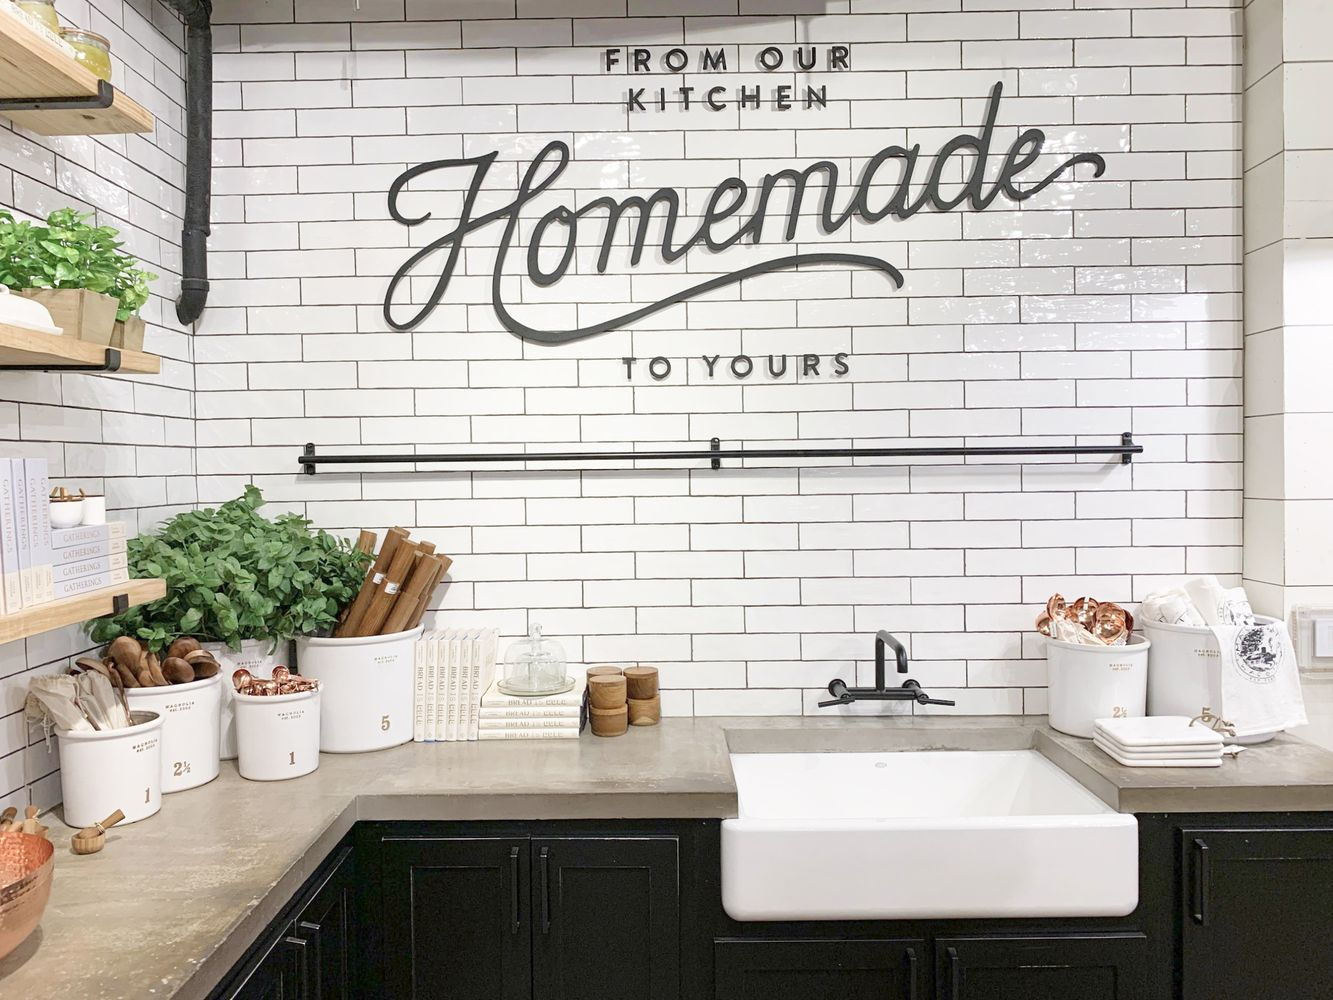 Subway Tile and Concrete Countertop Kitchen Display at Magnolia Market